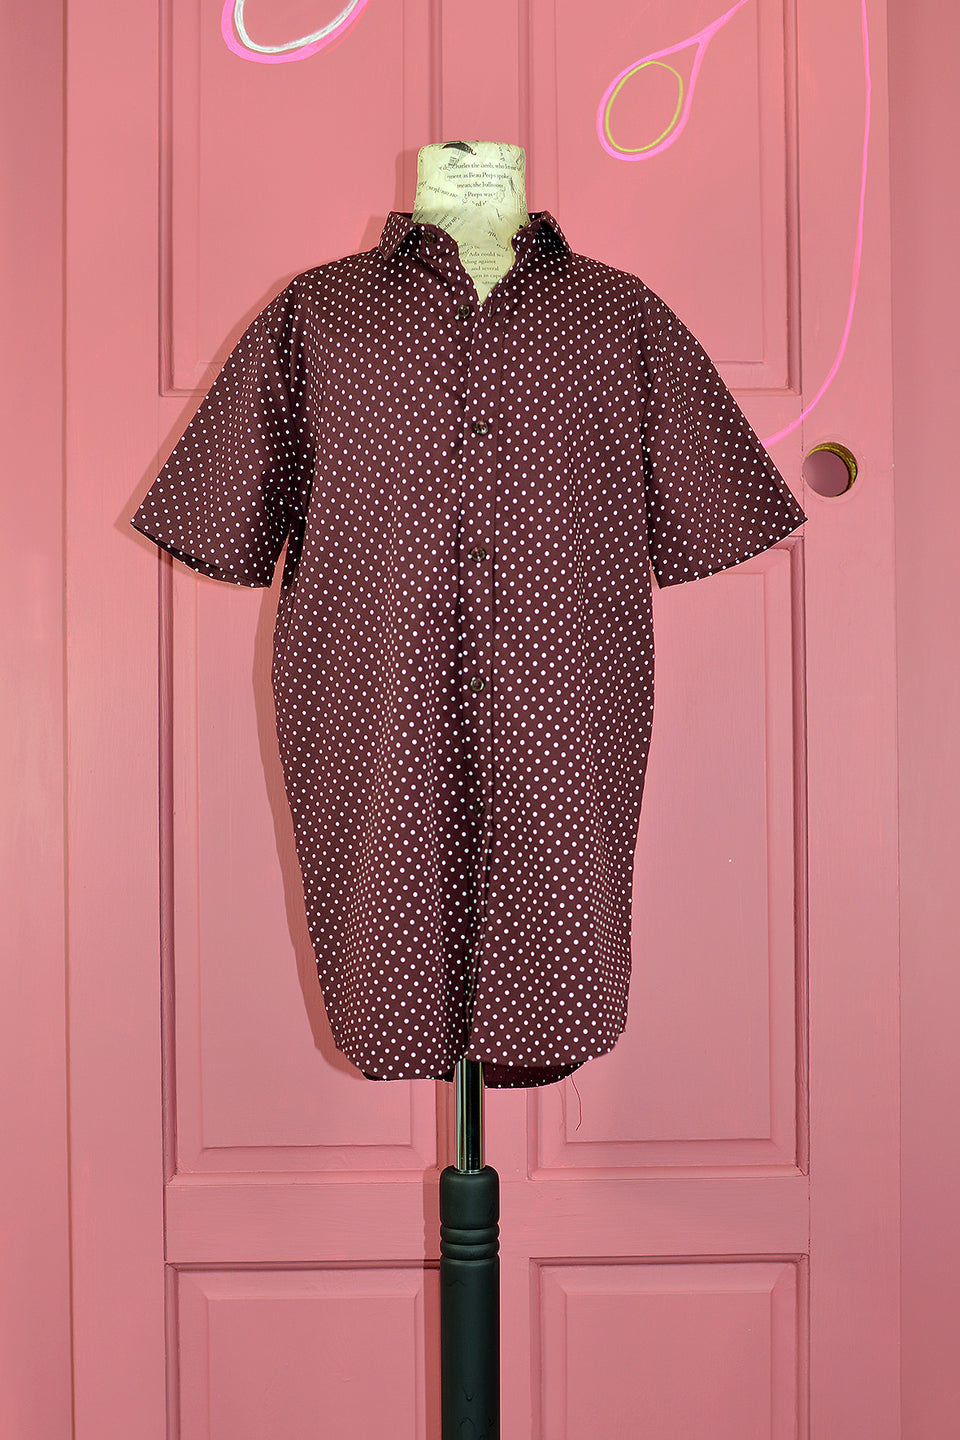 RIVER ISLAND Boys Burgundy & White Polka Dot Shirt, Size 11 Years. Pre-loved.